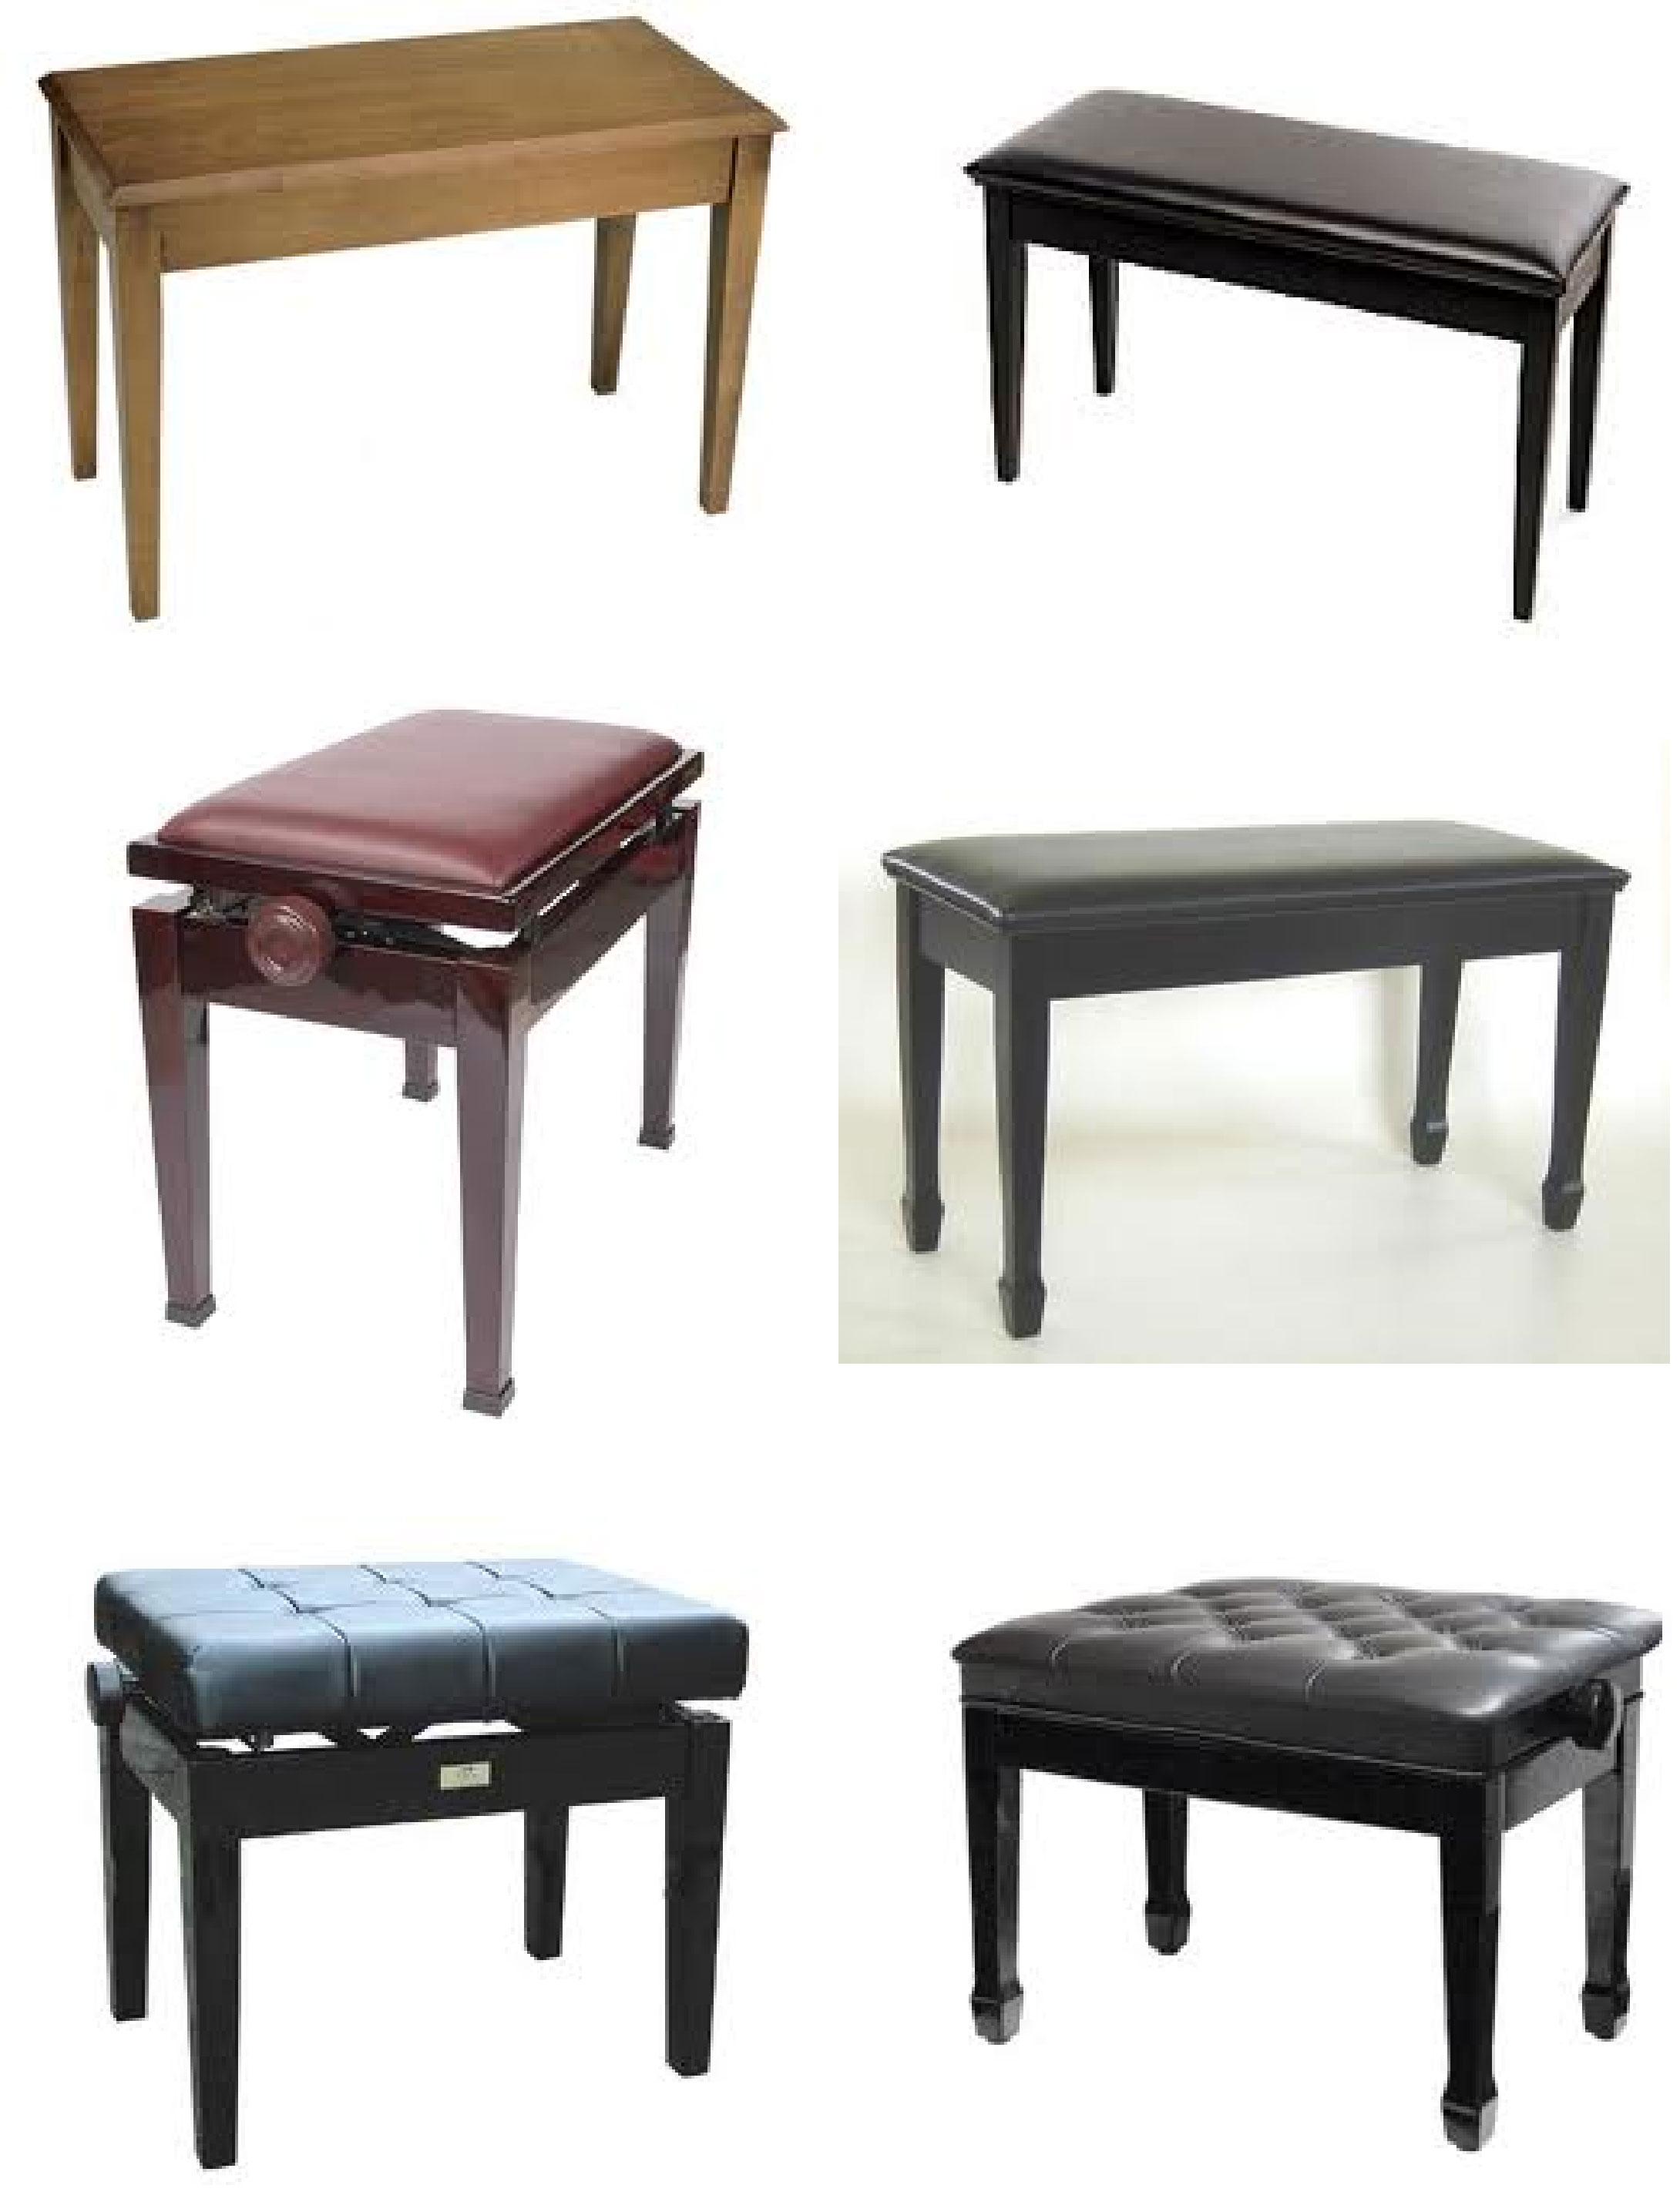 special order benches special order a piano bench all styles all finishes piano benches for. Black Bedroom Furniture Sets. Home Design Ideas